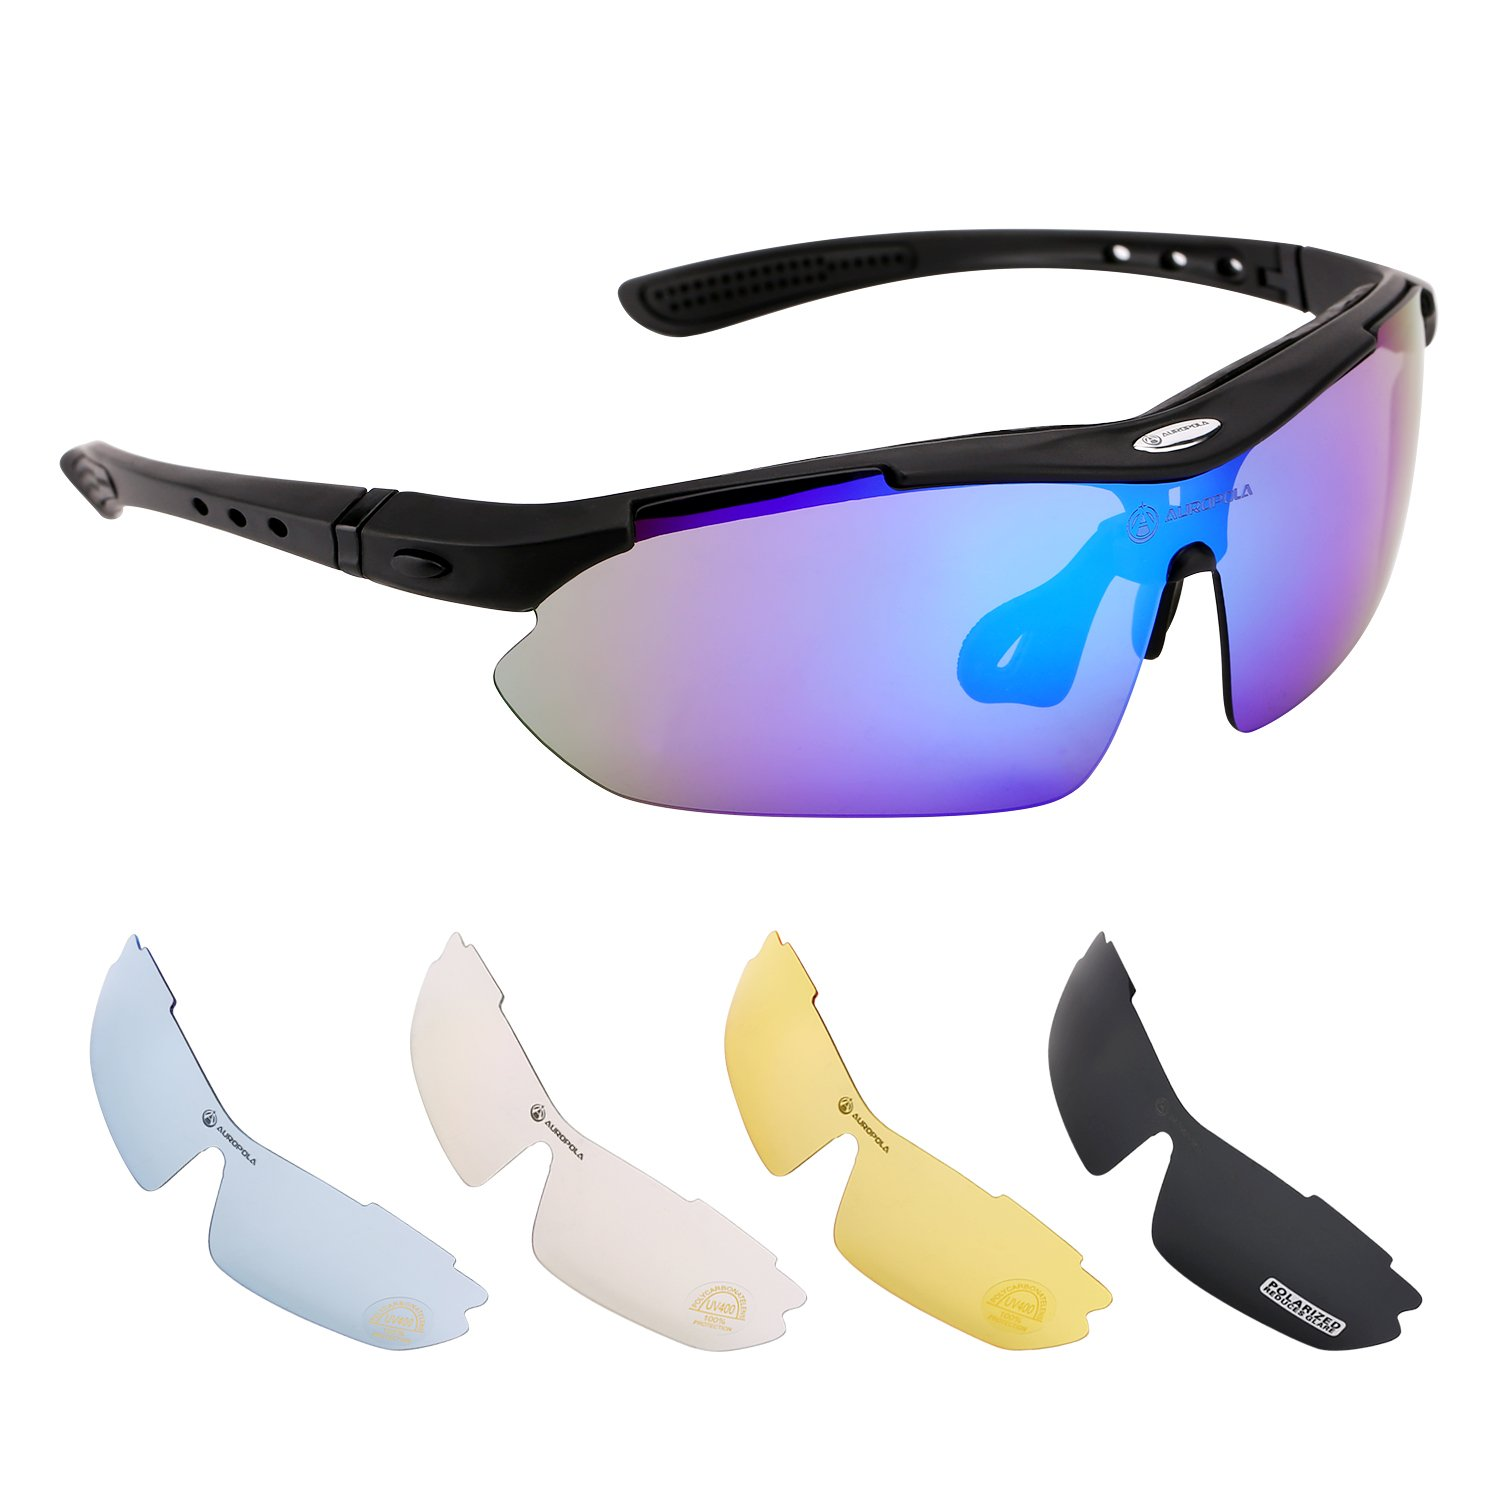 Sports Sunglasses Riding Glasses for Men Women Kids, Cycling Polarized Sunglasses with 5 Lenses for Cycling, Fishing, Running, Driving, Golf, Baseball, Outdoor Activities